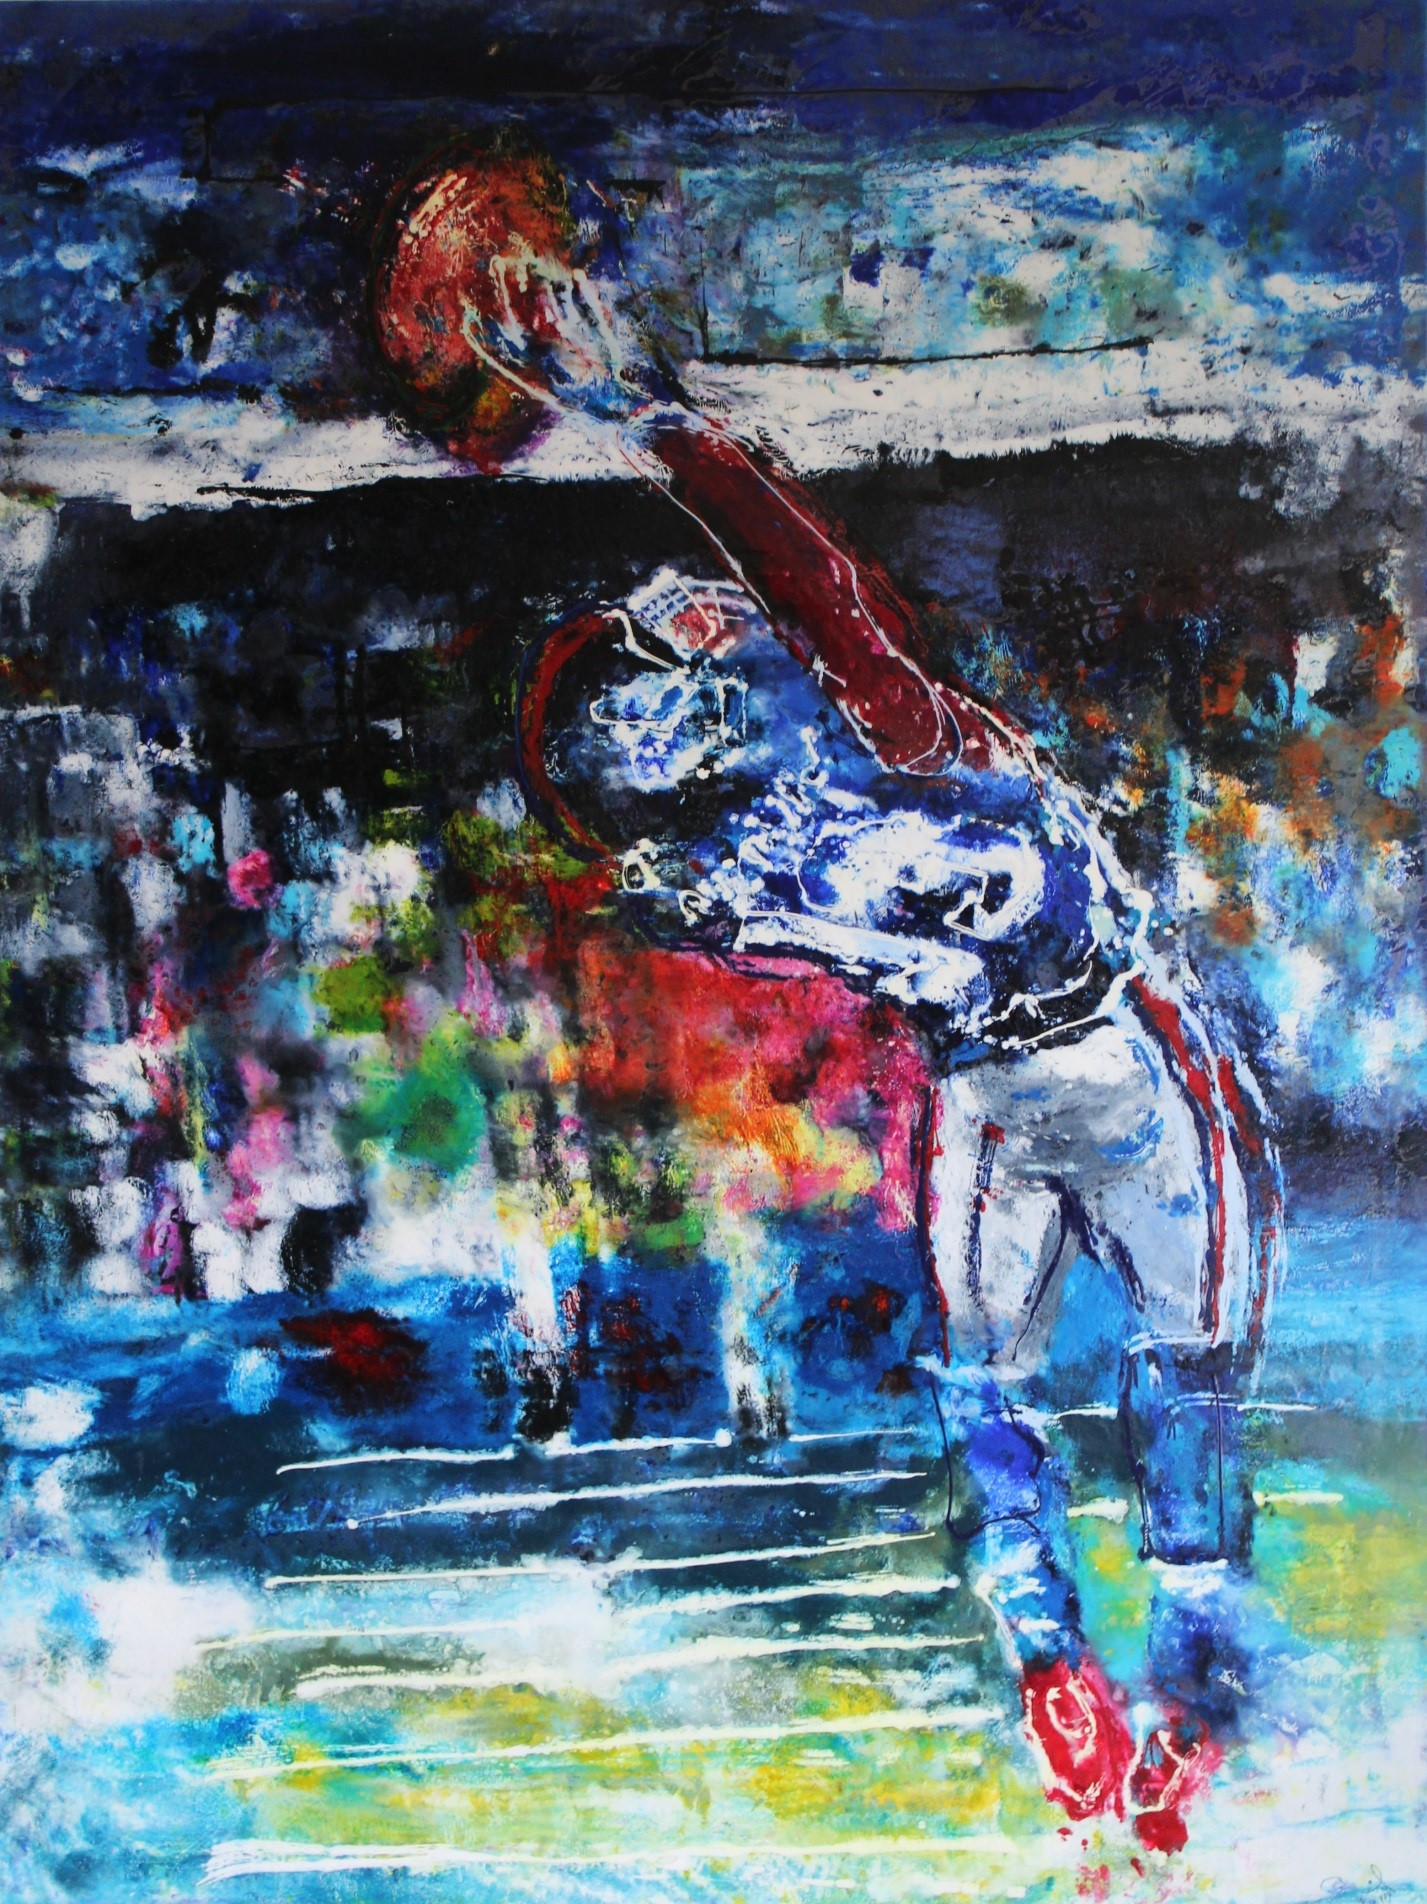 Odell Beckham Jr., 2015 Giant Catch